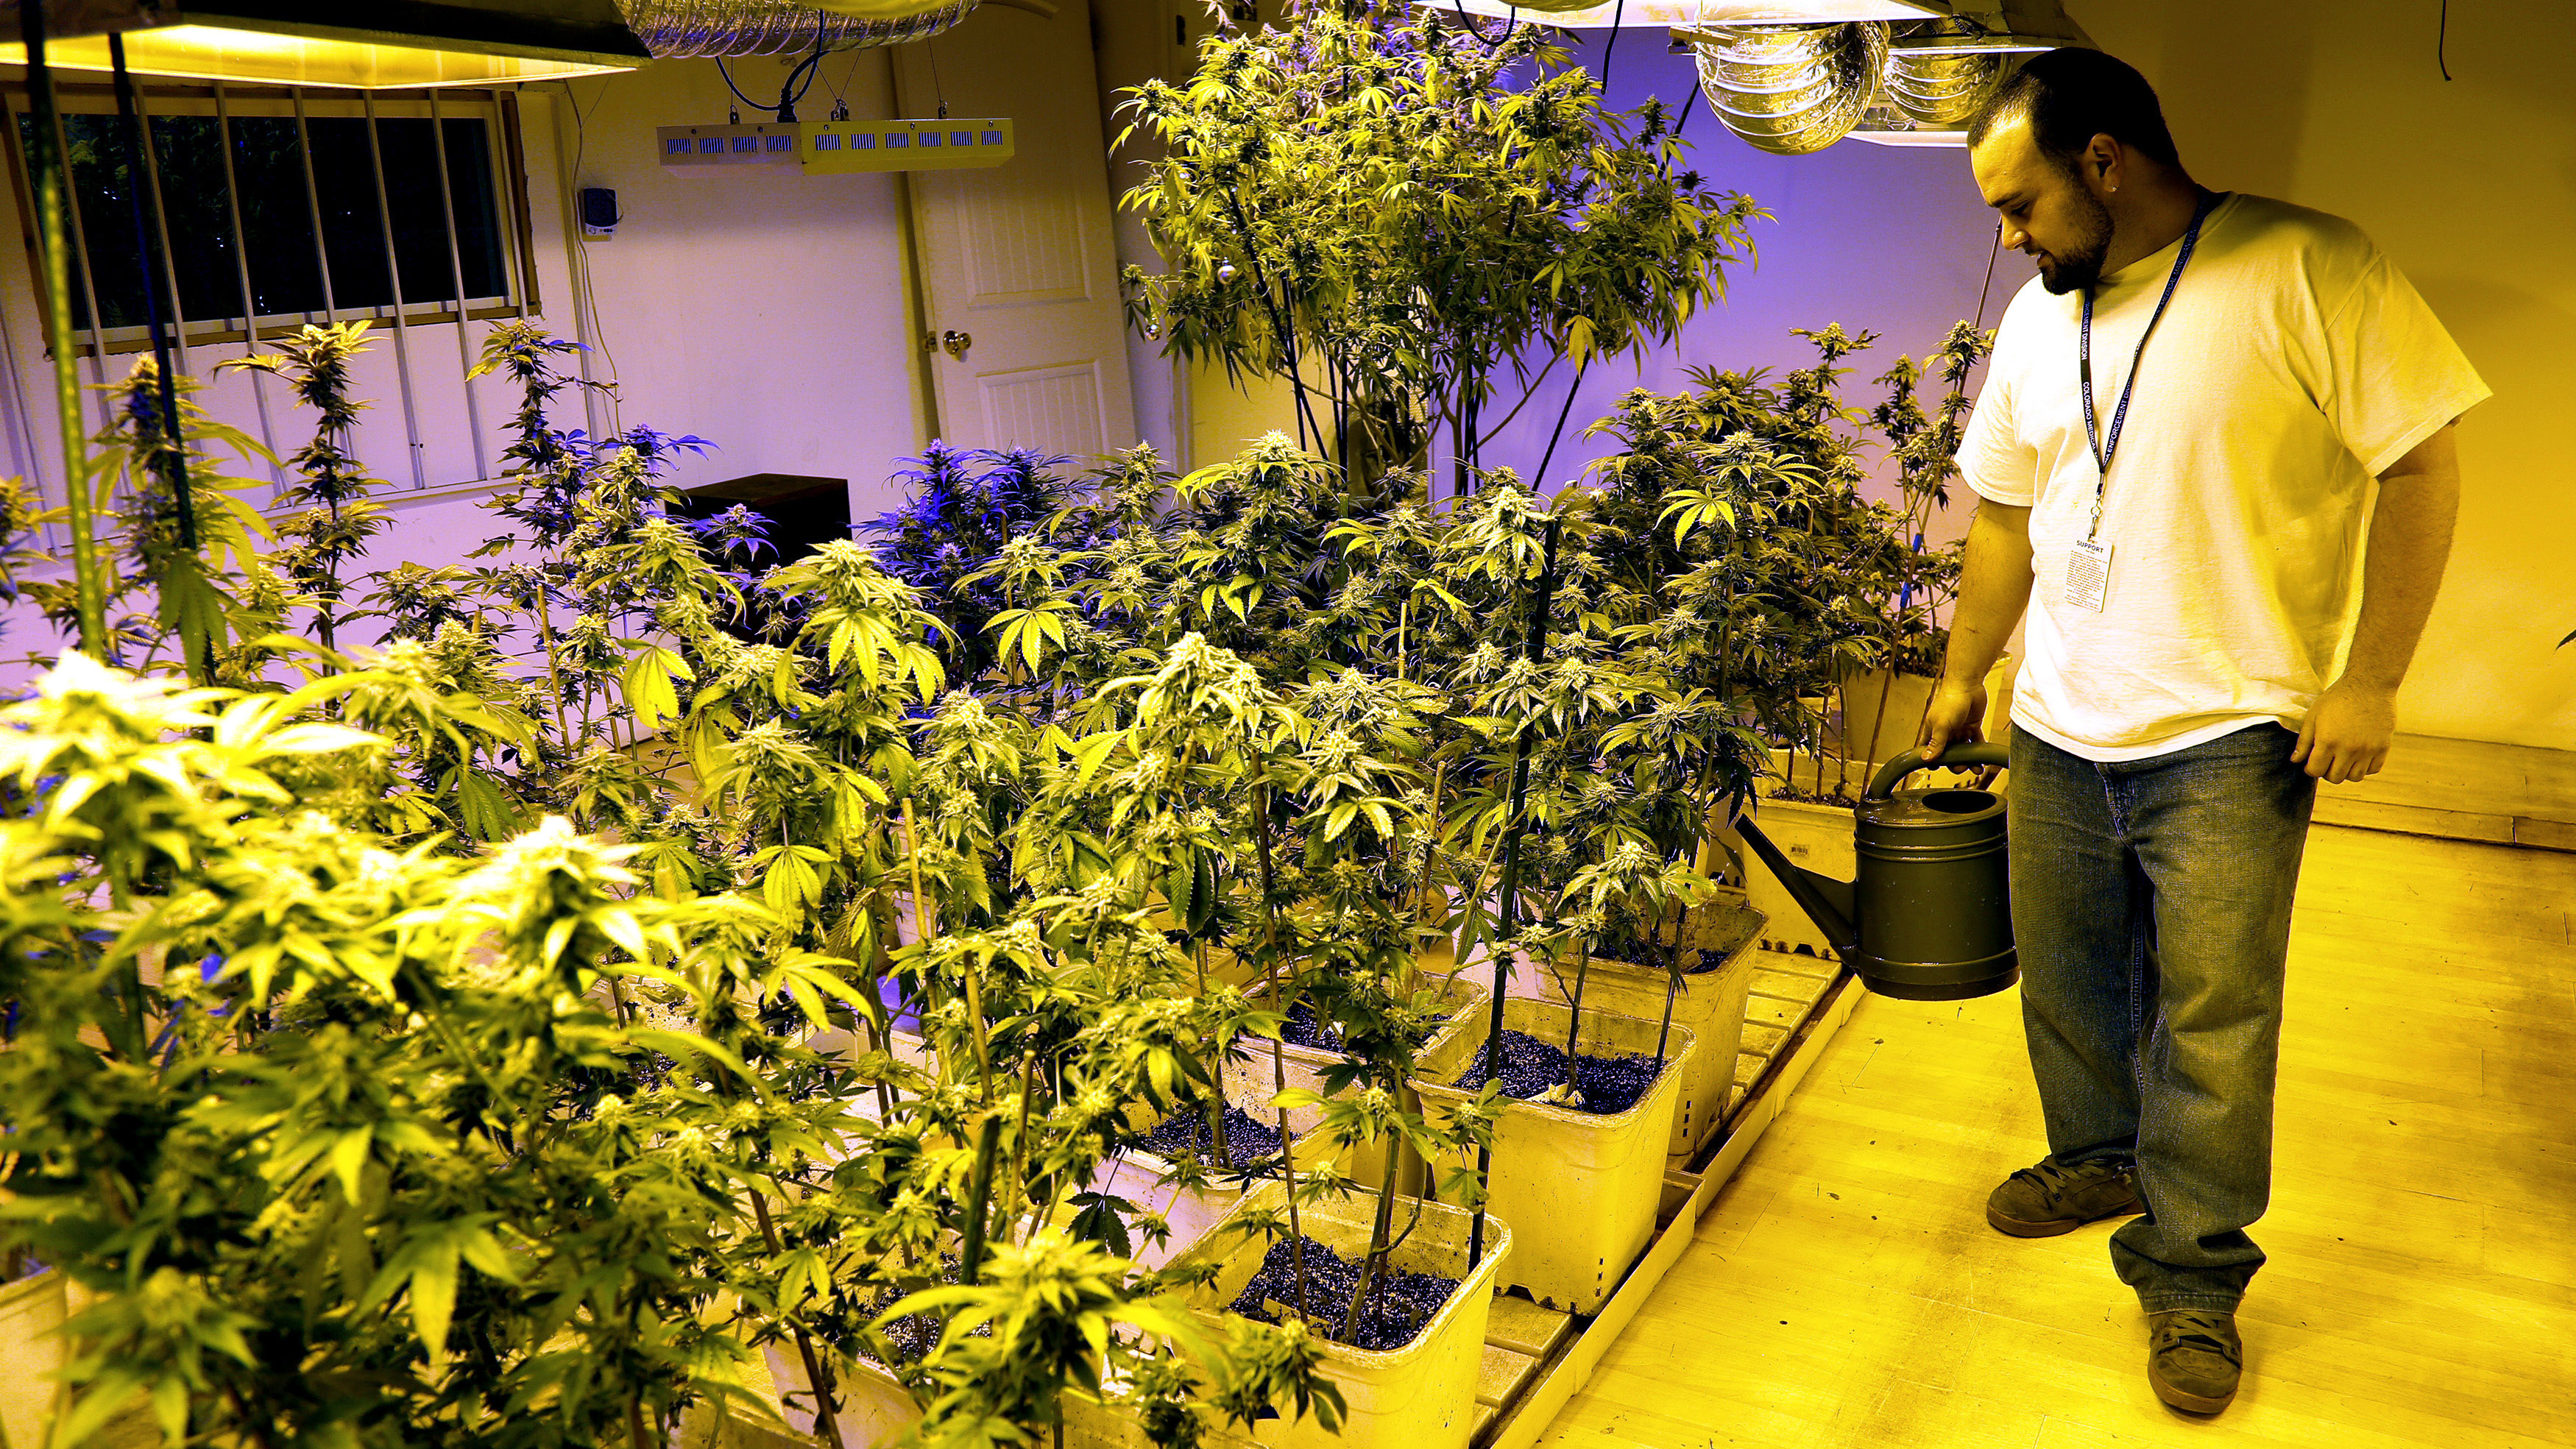 Joe Rey, a grower at 3D Cannabis Center, waters marijuana plants at the company facility in Denver December 31, 2013. Proprietors of the first marijuana retailers licensed to sell pot for recreational use in Colorado, including 3D, were busy rolling joints and stocking shelves with their leafy merchandise on Tuesday, ahead of a New Year's Day grand opening that marks a new chapter in America's drug culture.  REUTERS/Rick Wilking (UNITED STATES - Tags: BUSINESS SOCIETY POLITICS DRUGS) - RTX16YCD